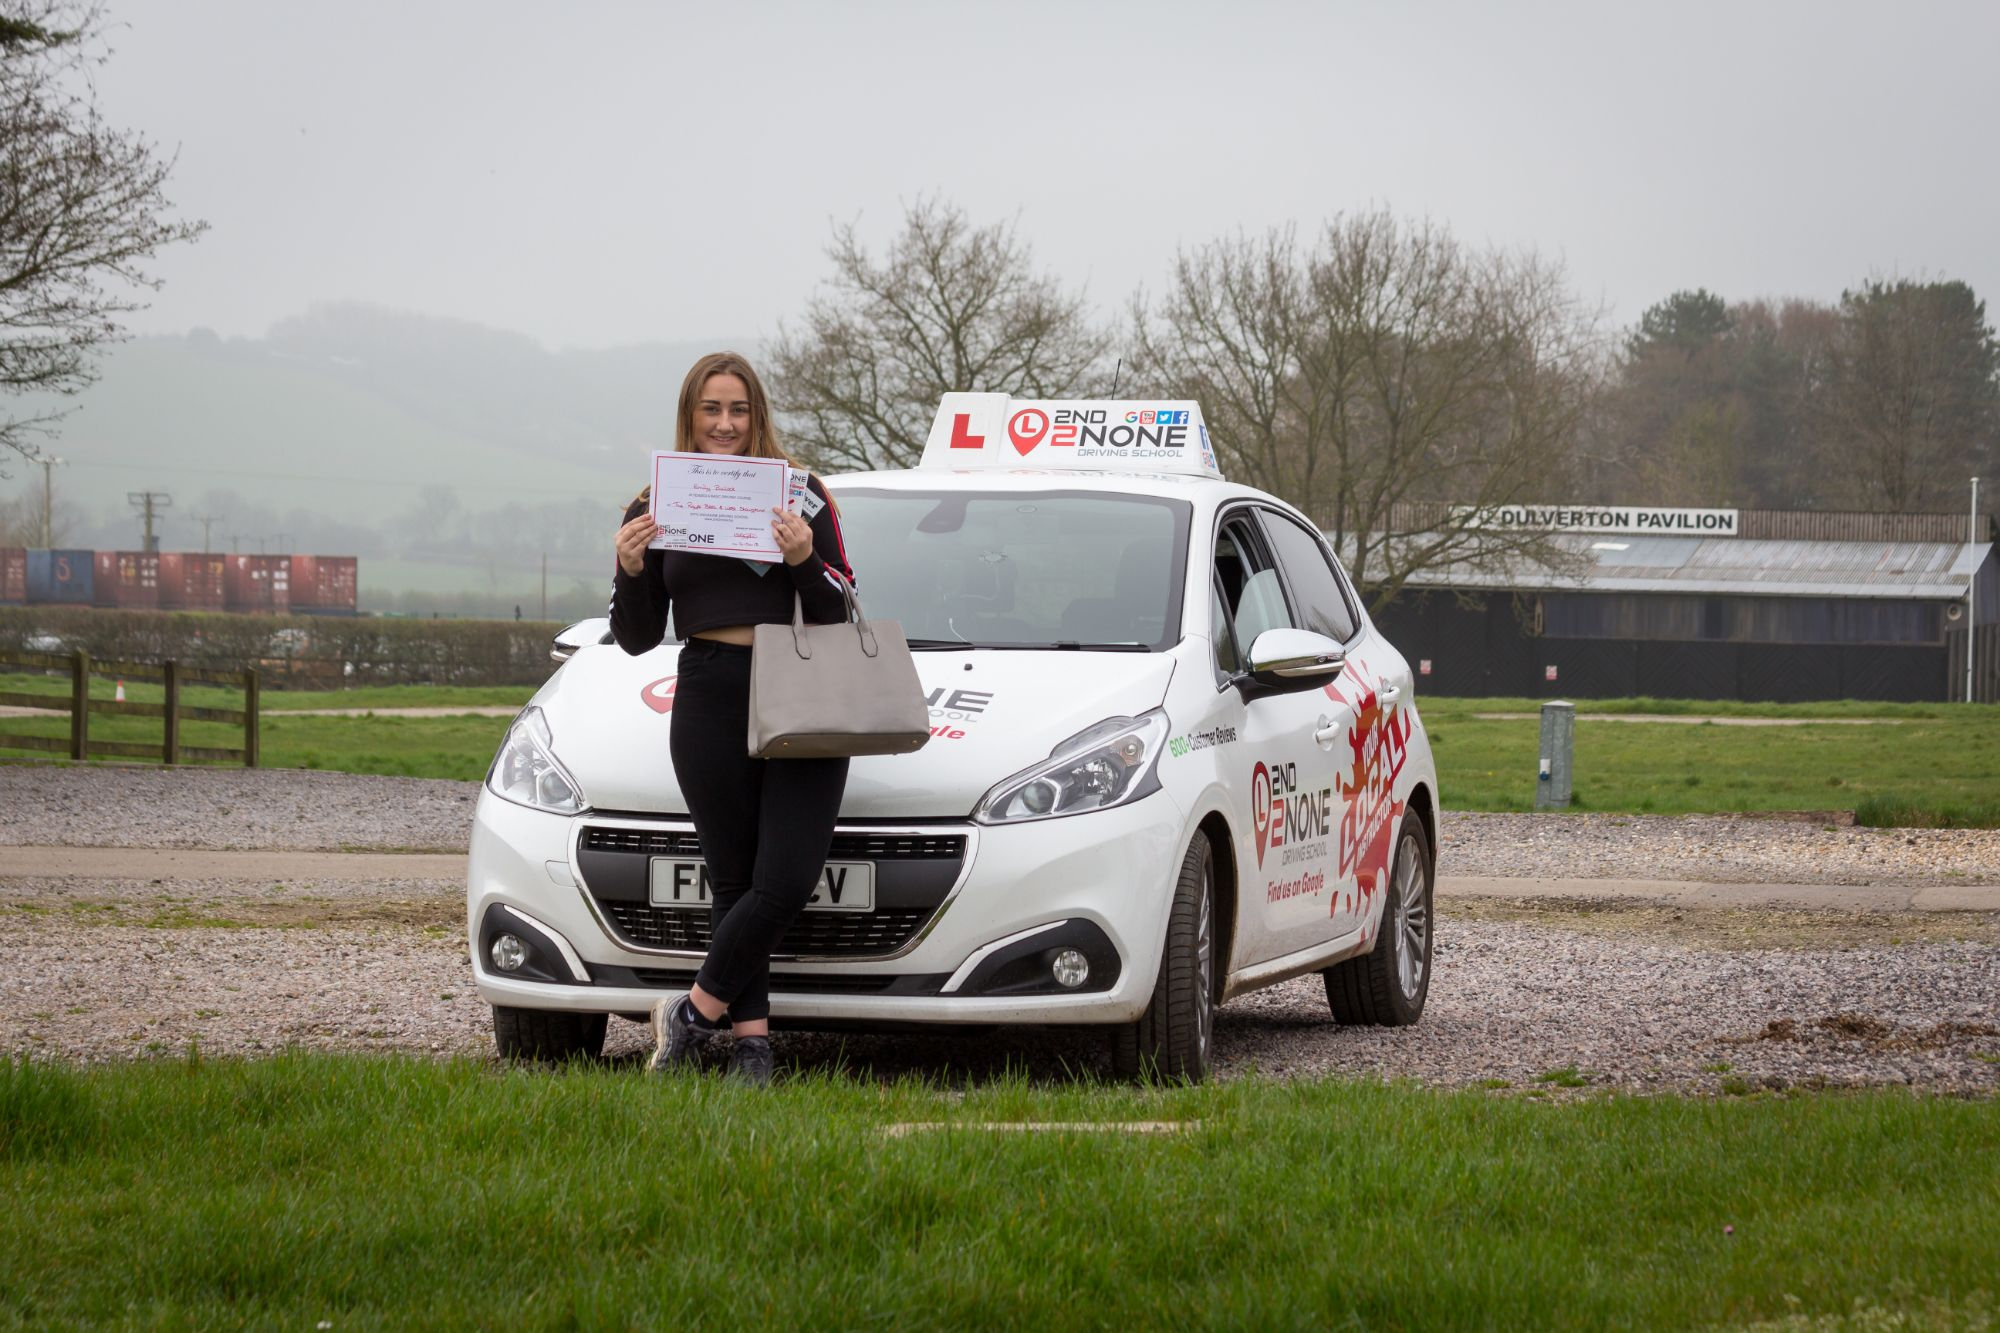 Under 17's Driving Lessons St Austell